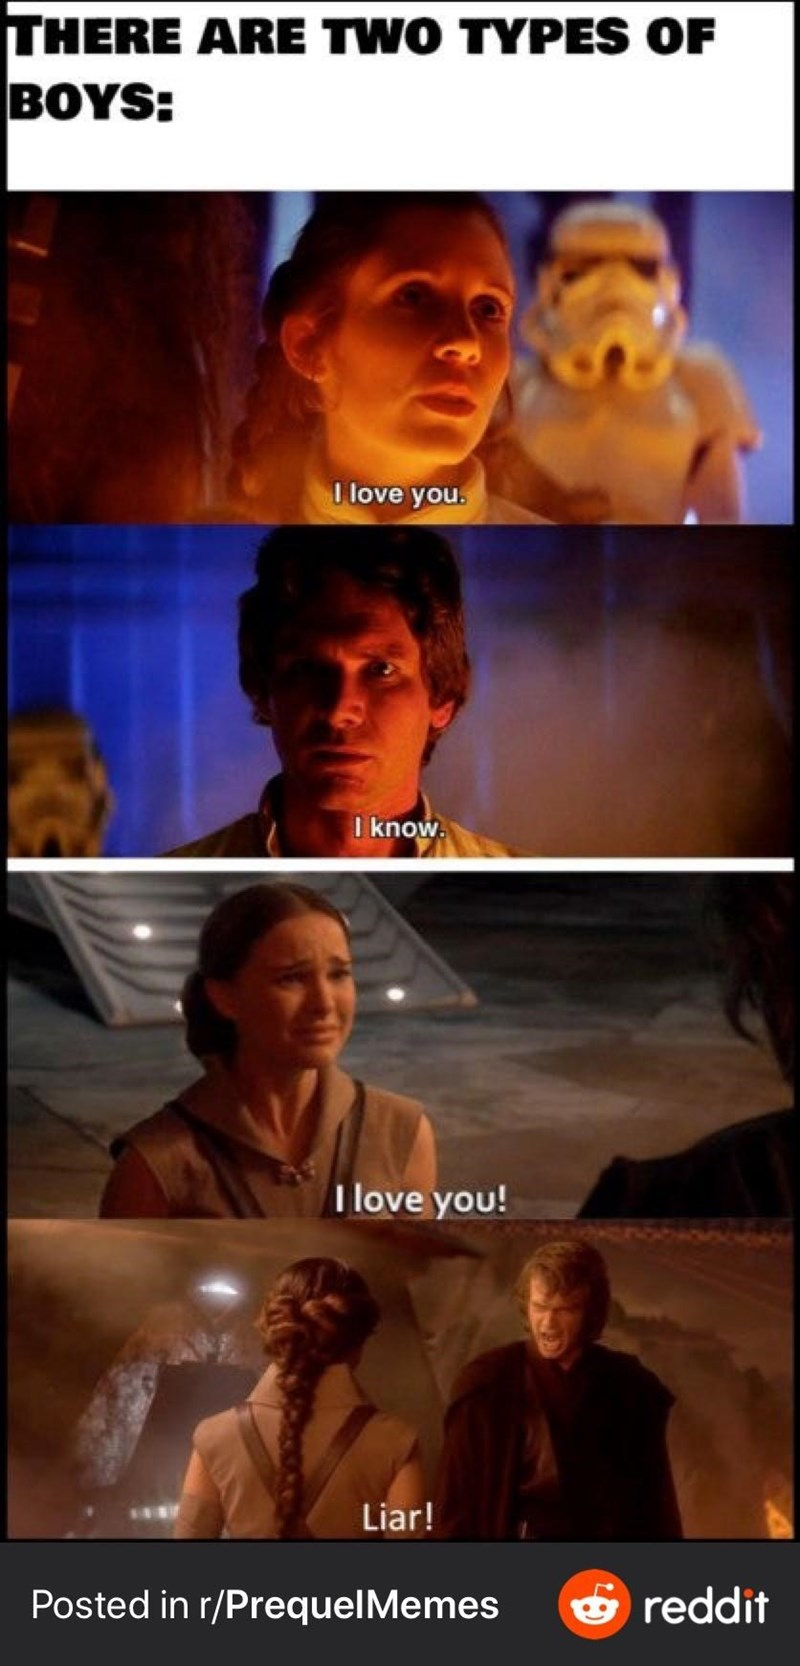 Movie - THERE ARE TWO TYPES OF BOYS: I love you. I know. I love you! Liar! Posted in r/PrequelMemes & reddit